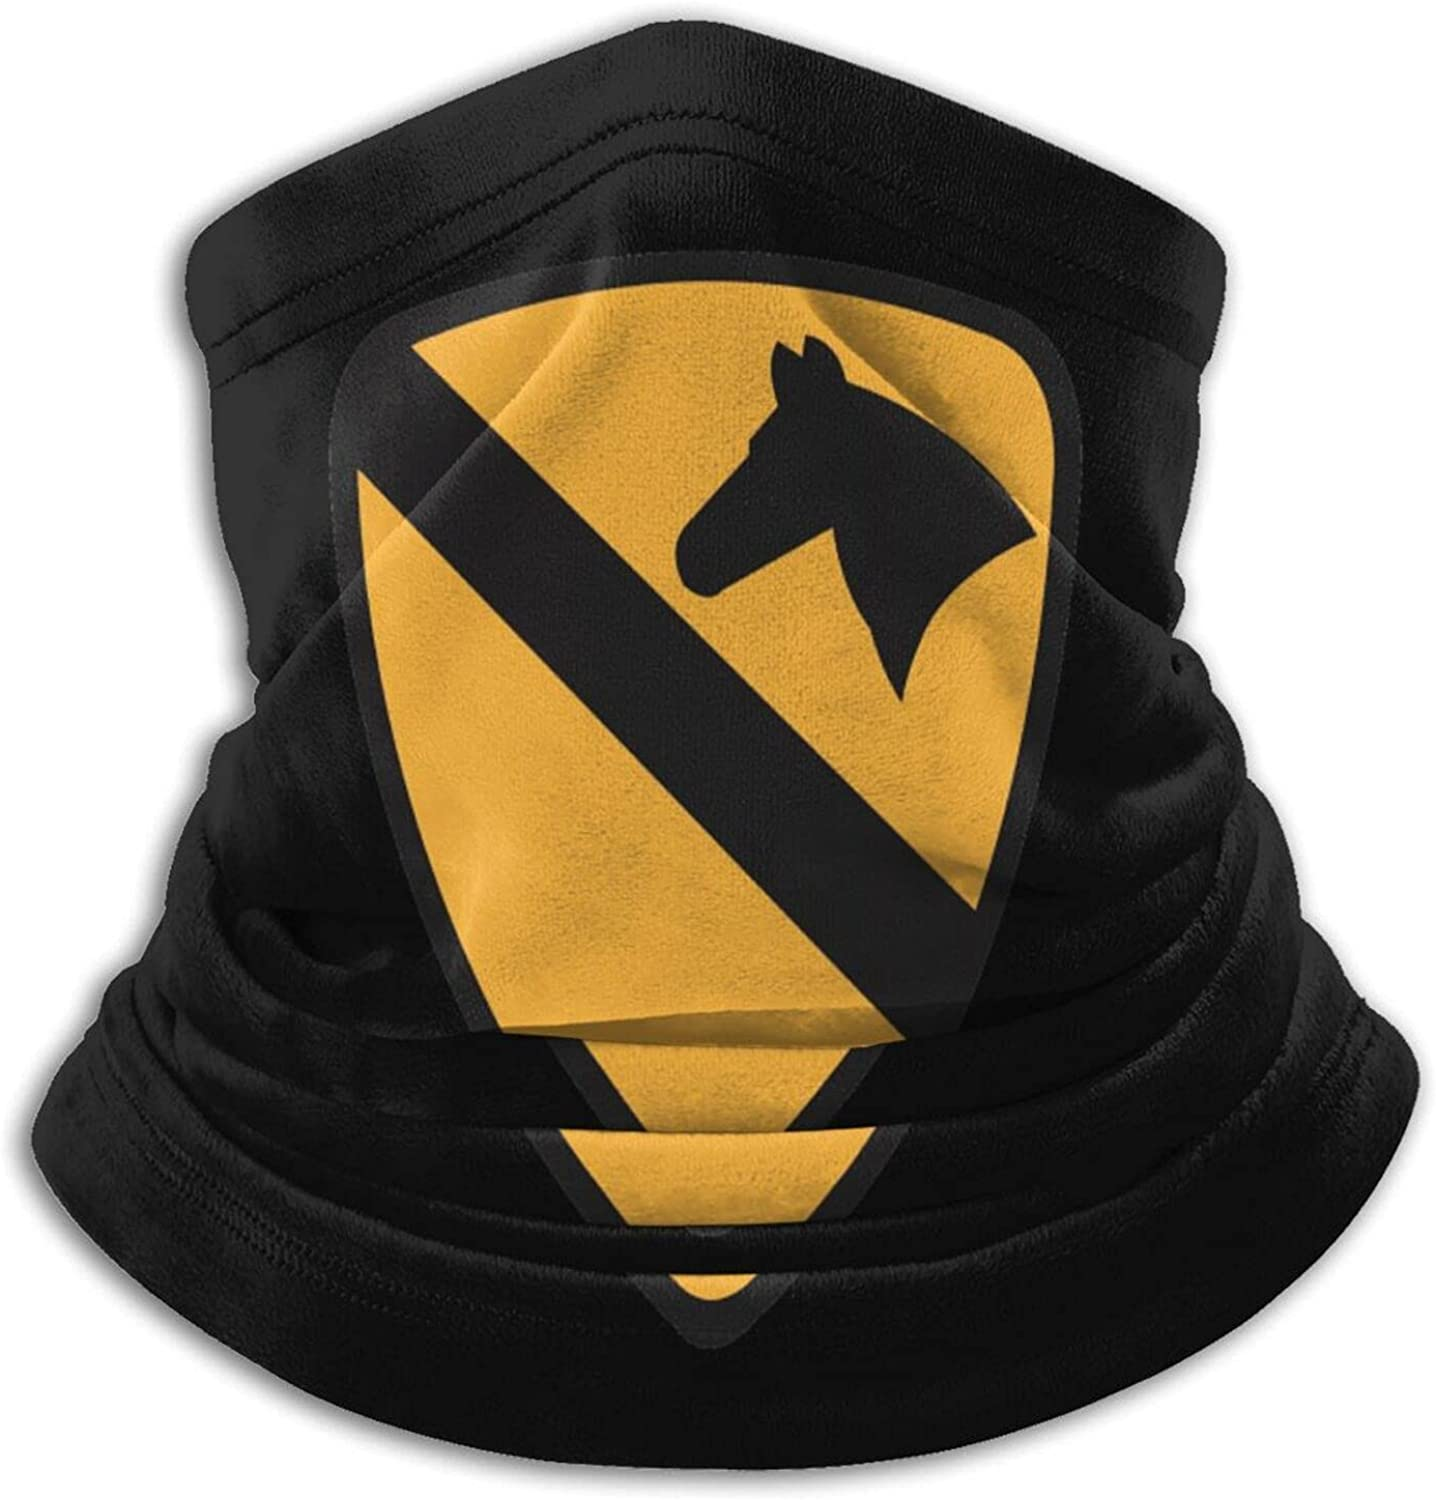 U.s army 1st cavalry division unisex winter neck gaiter face cover mask, windproof balaclava scarf for fishing, running & hiking